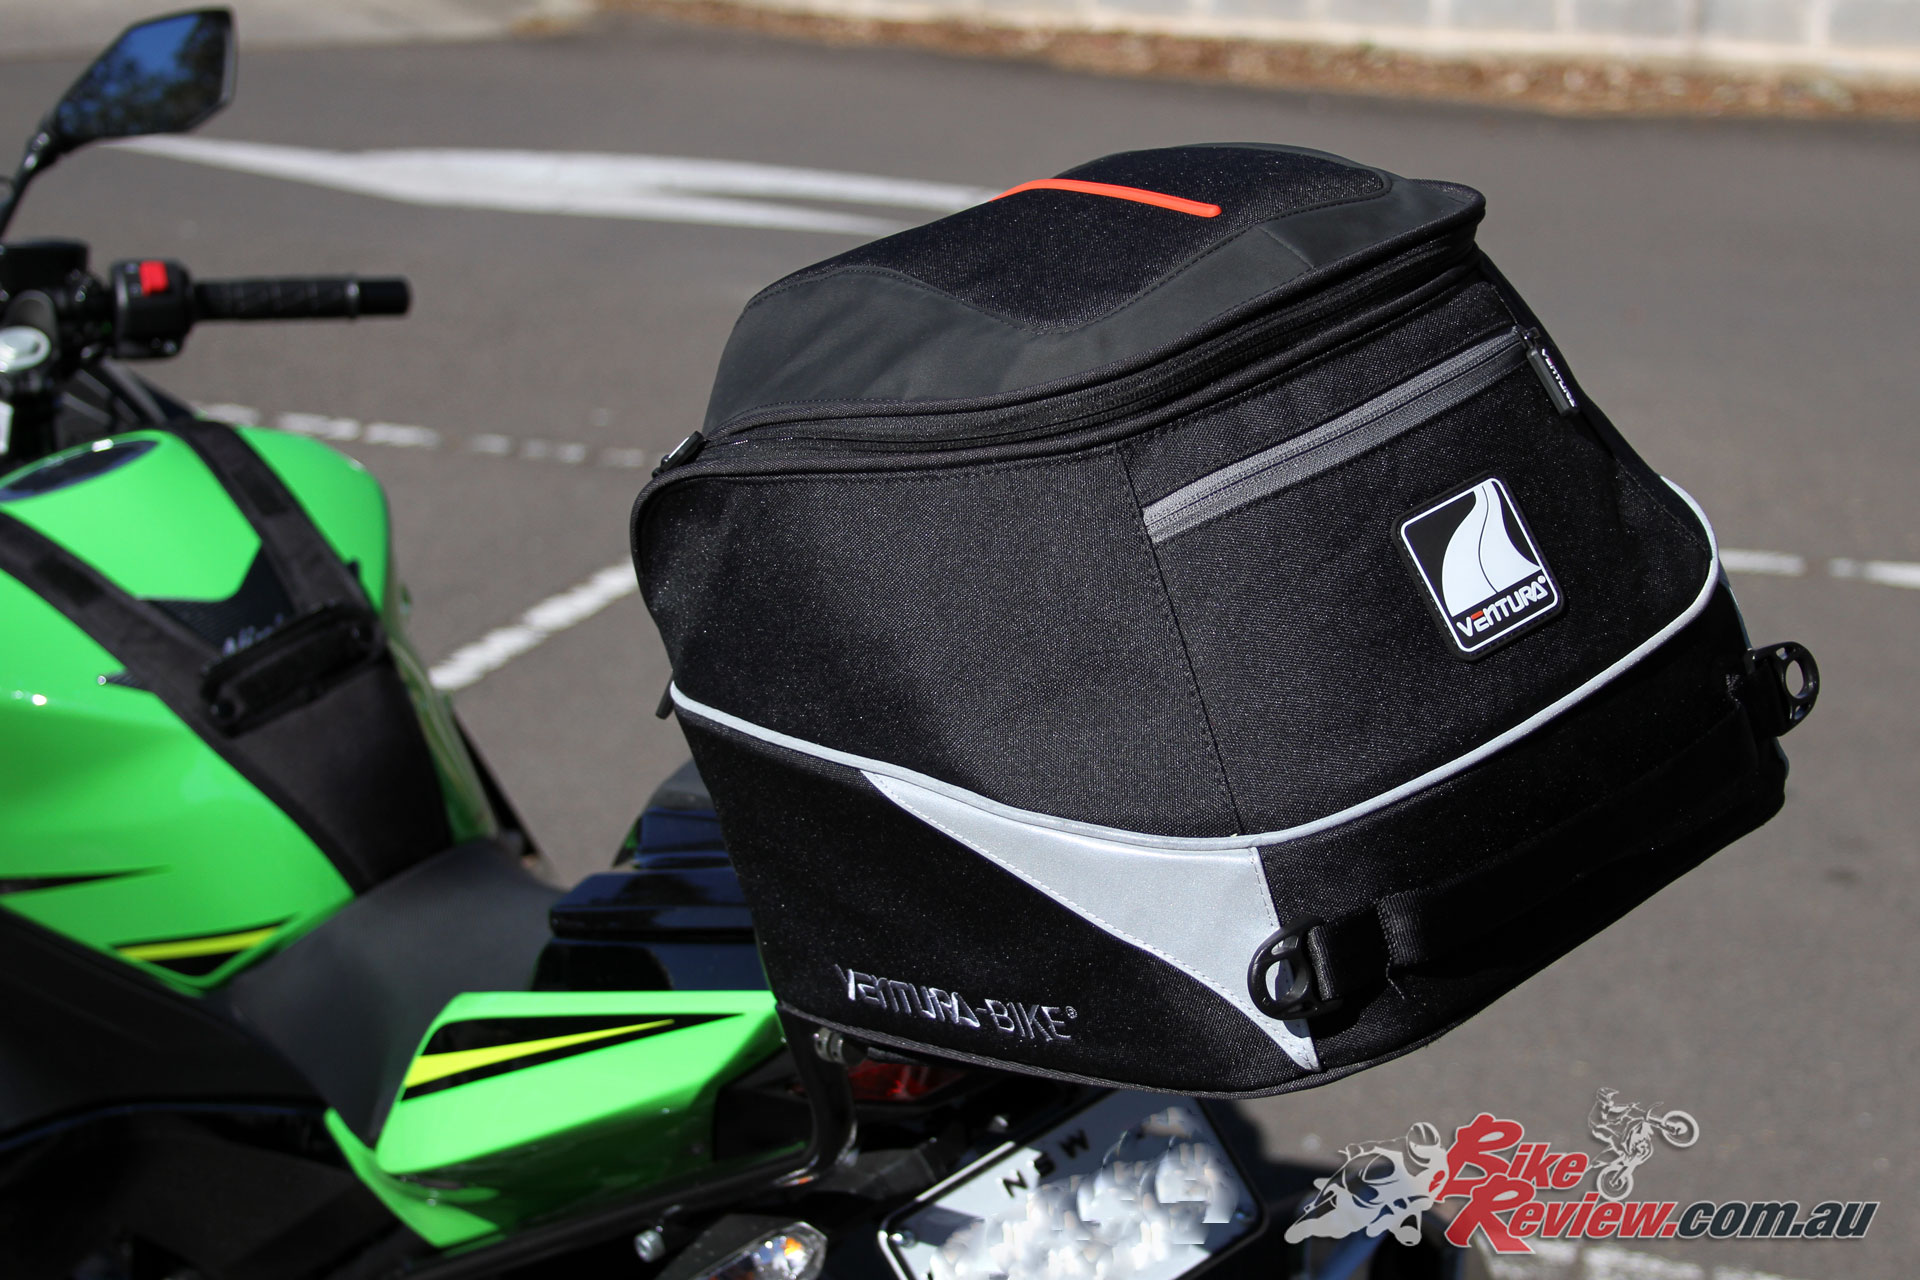 Ventura's EVO-22 Jet Stream Kit offers a new mid-capacity luggage option